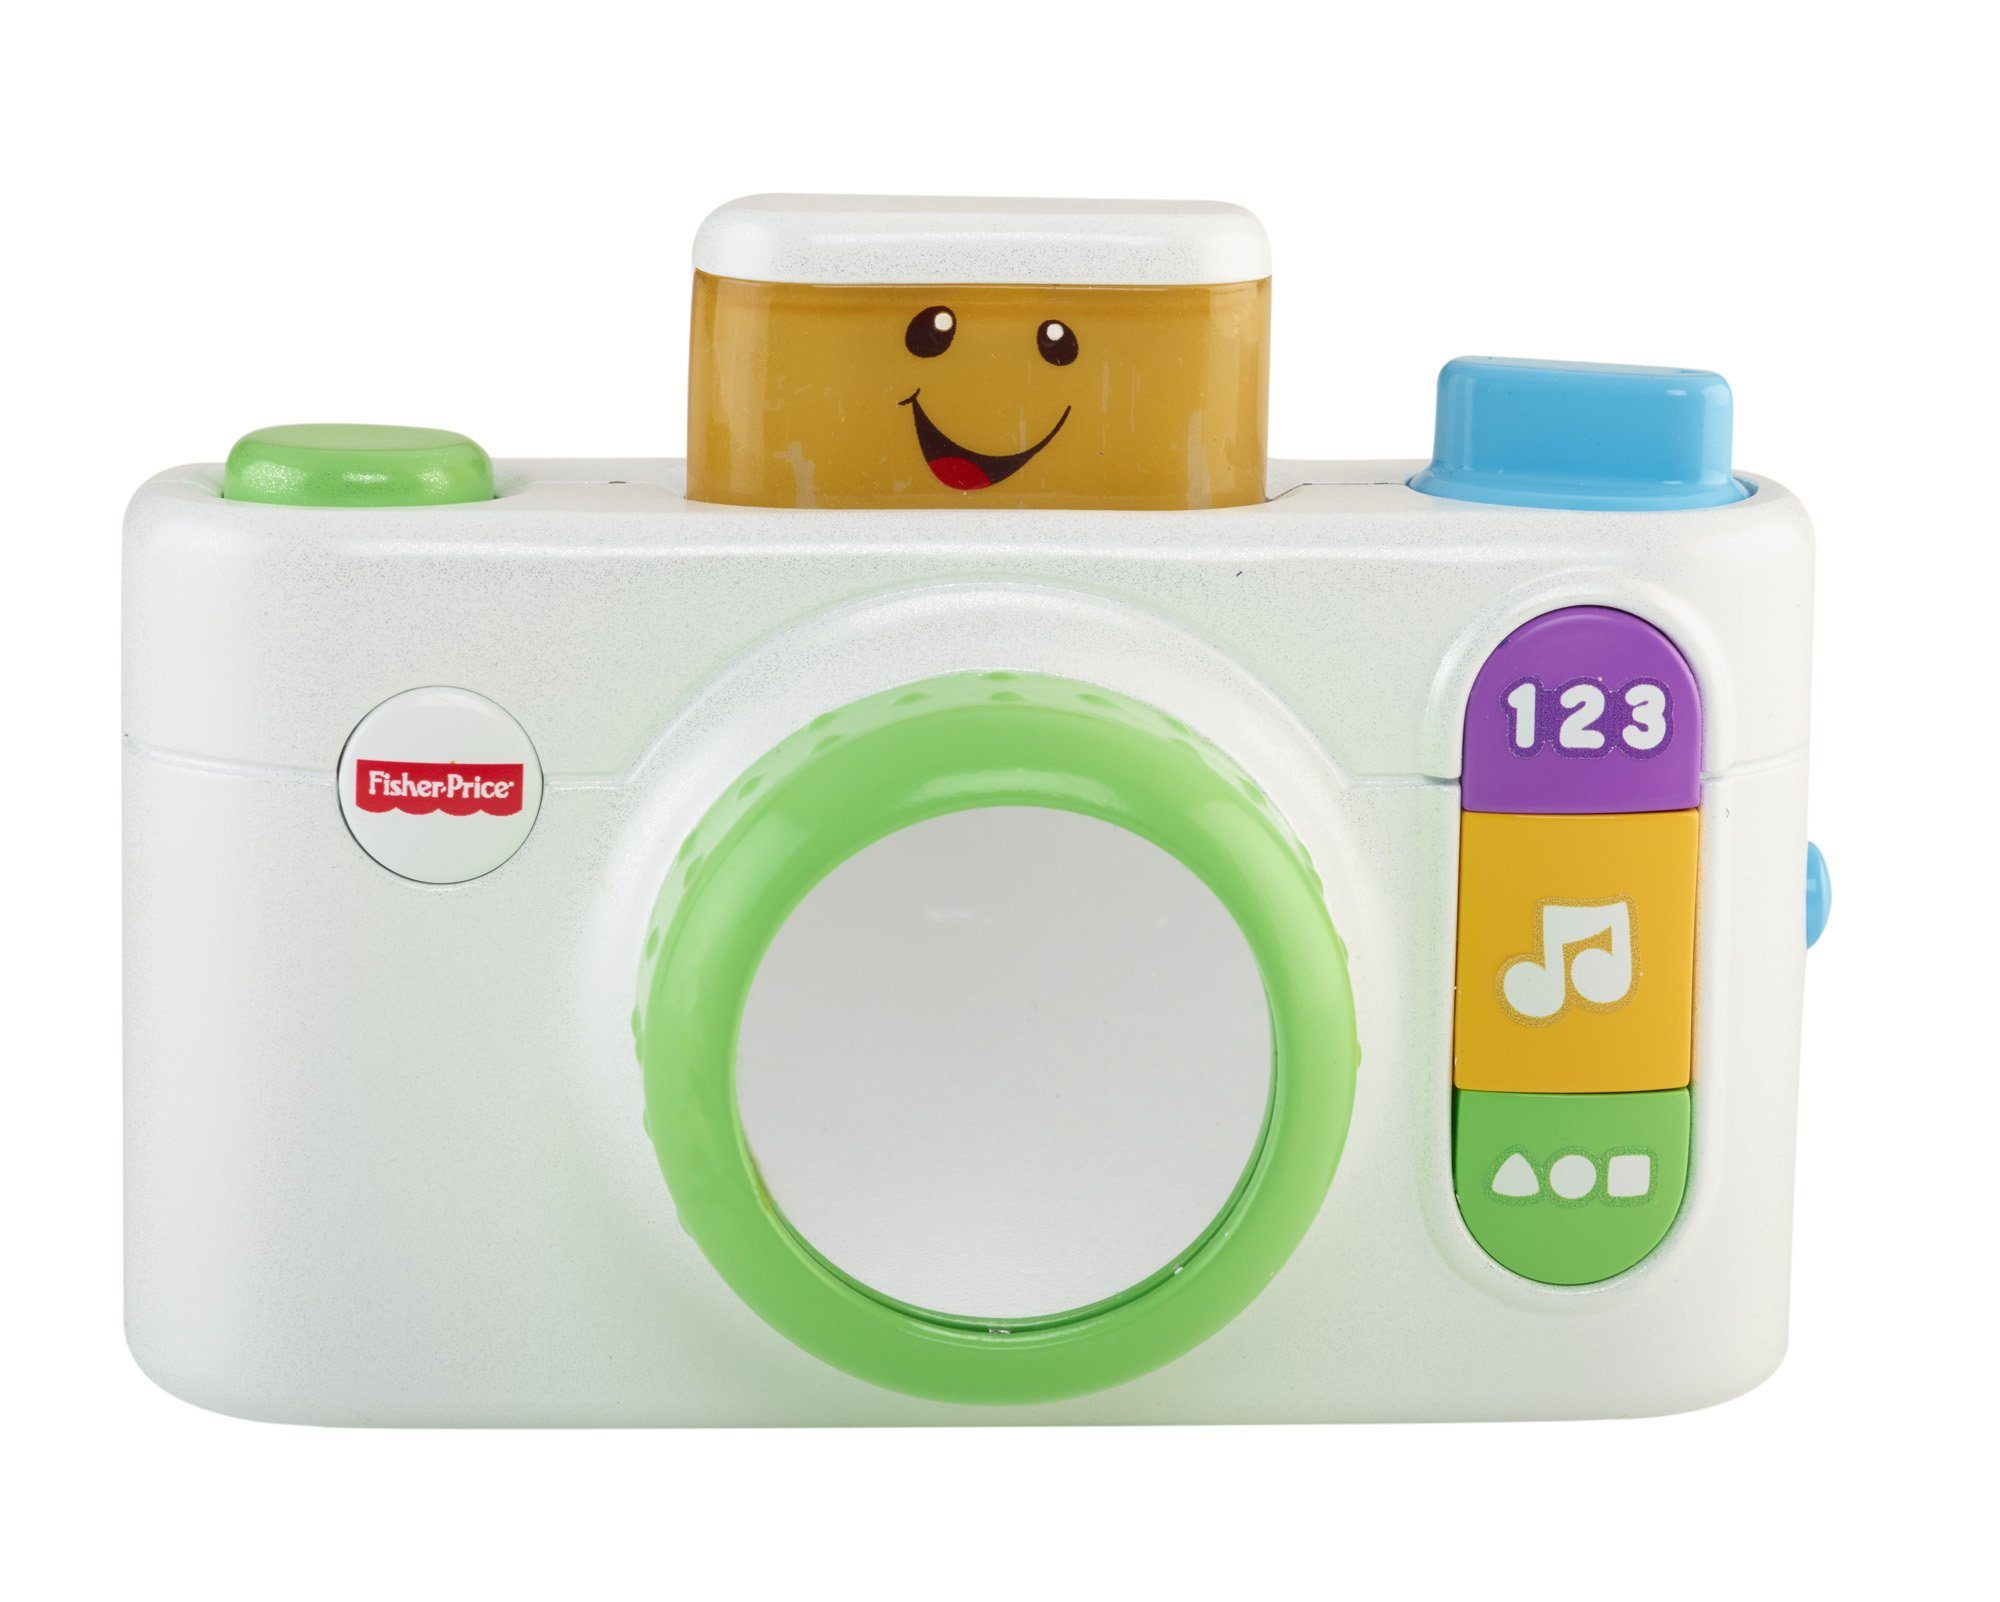 Fisher-Price Laugh & Learn Click 'n Learn Camera, White by Fisher-Price (Image #2)